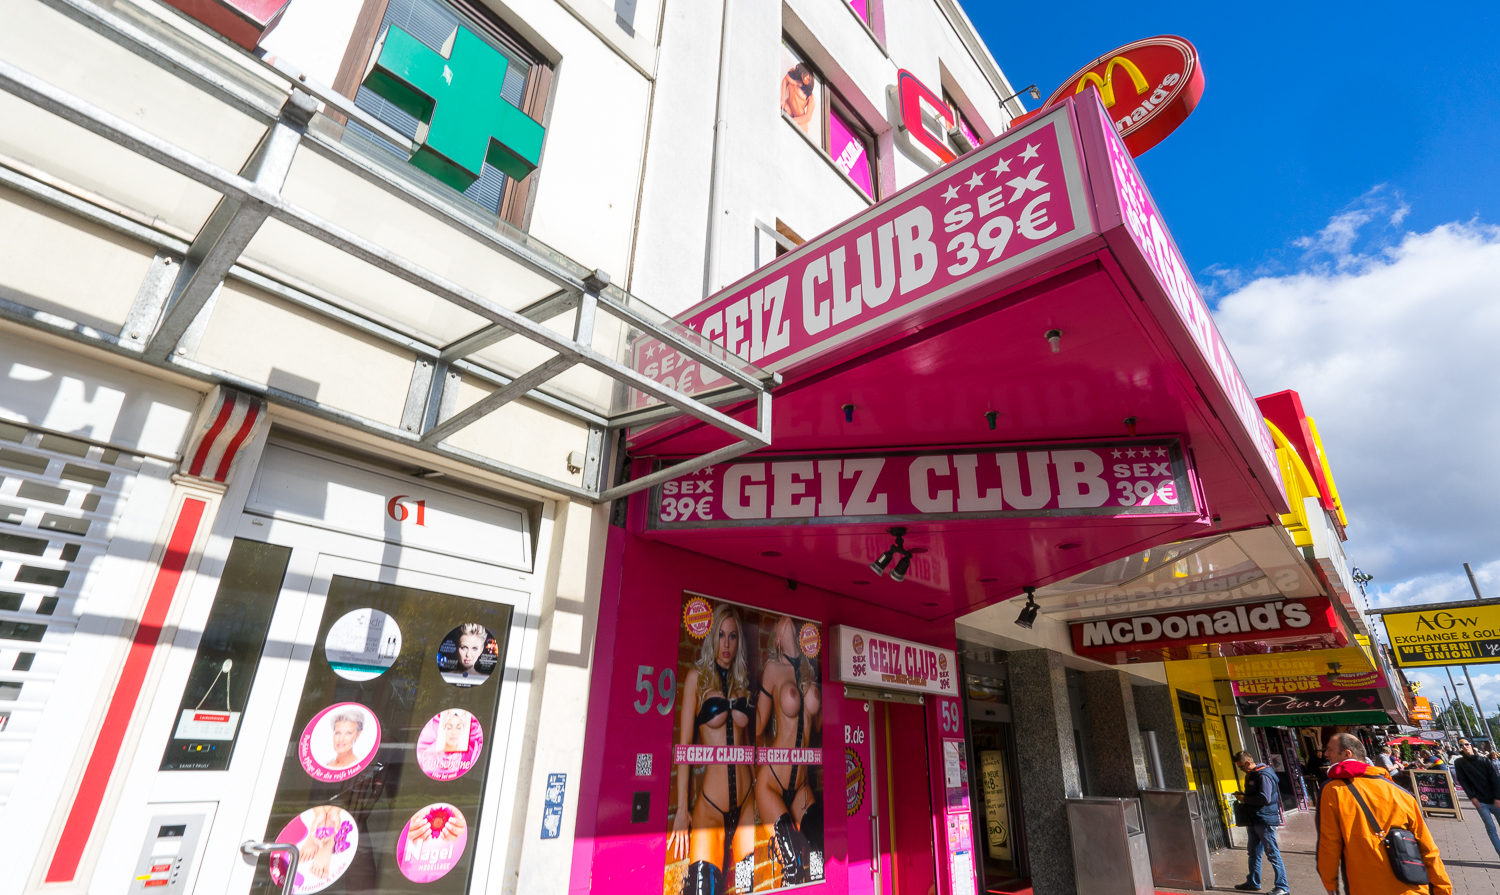 THE SEX CLUBS IN THE REEPERBAHN DISTRICT // MEET YOU THERE IMAGES